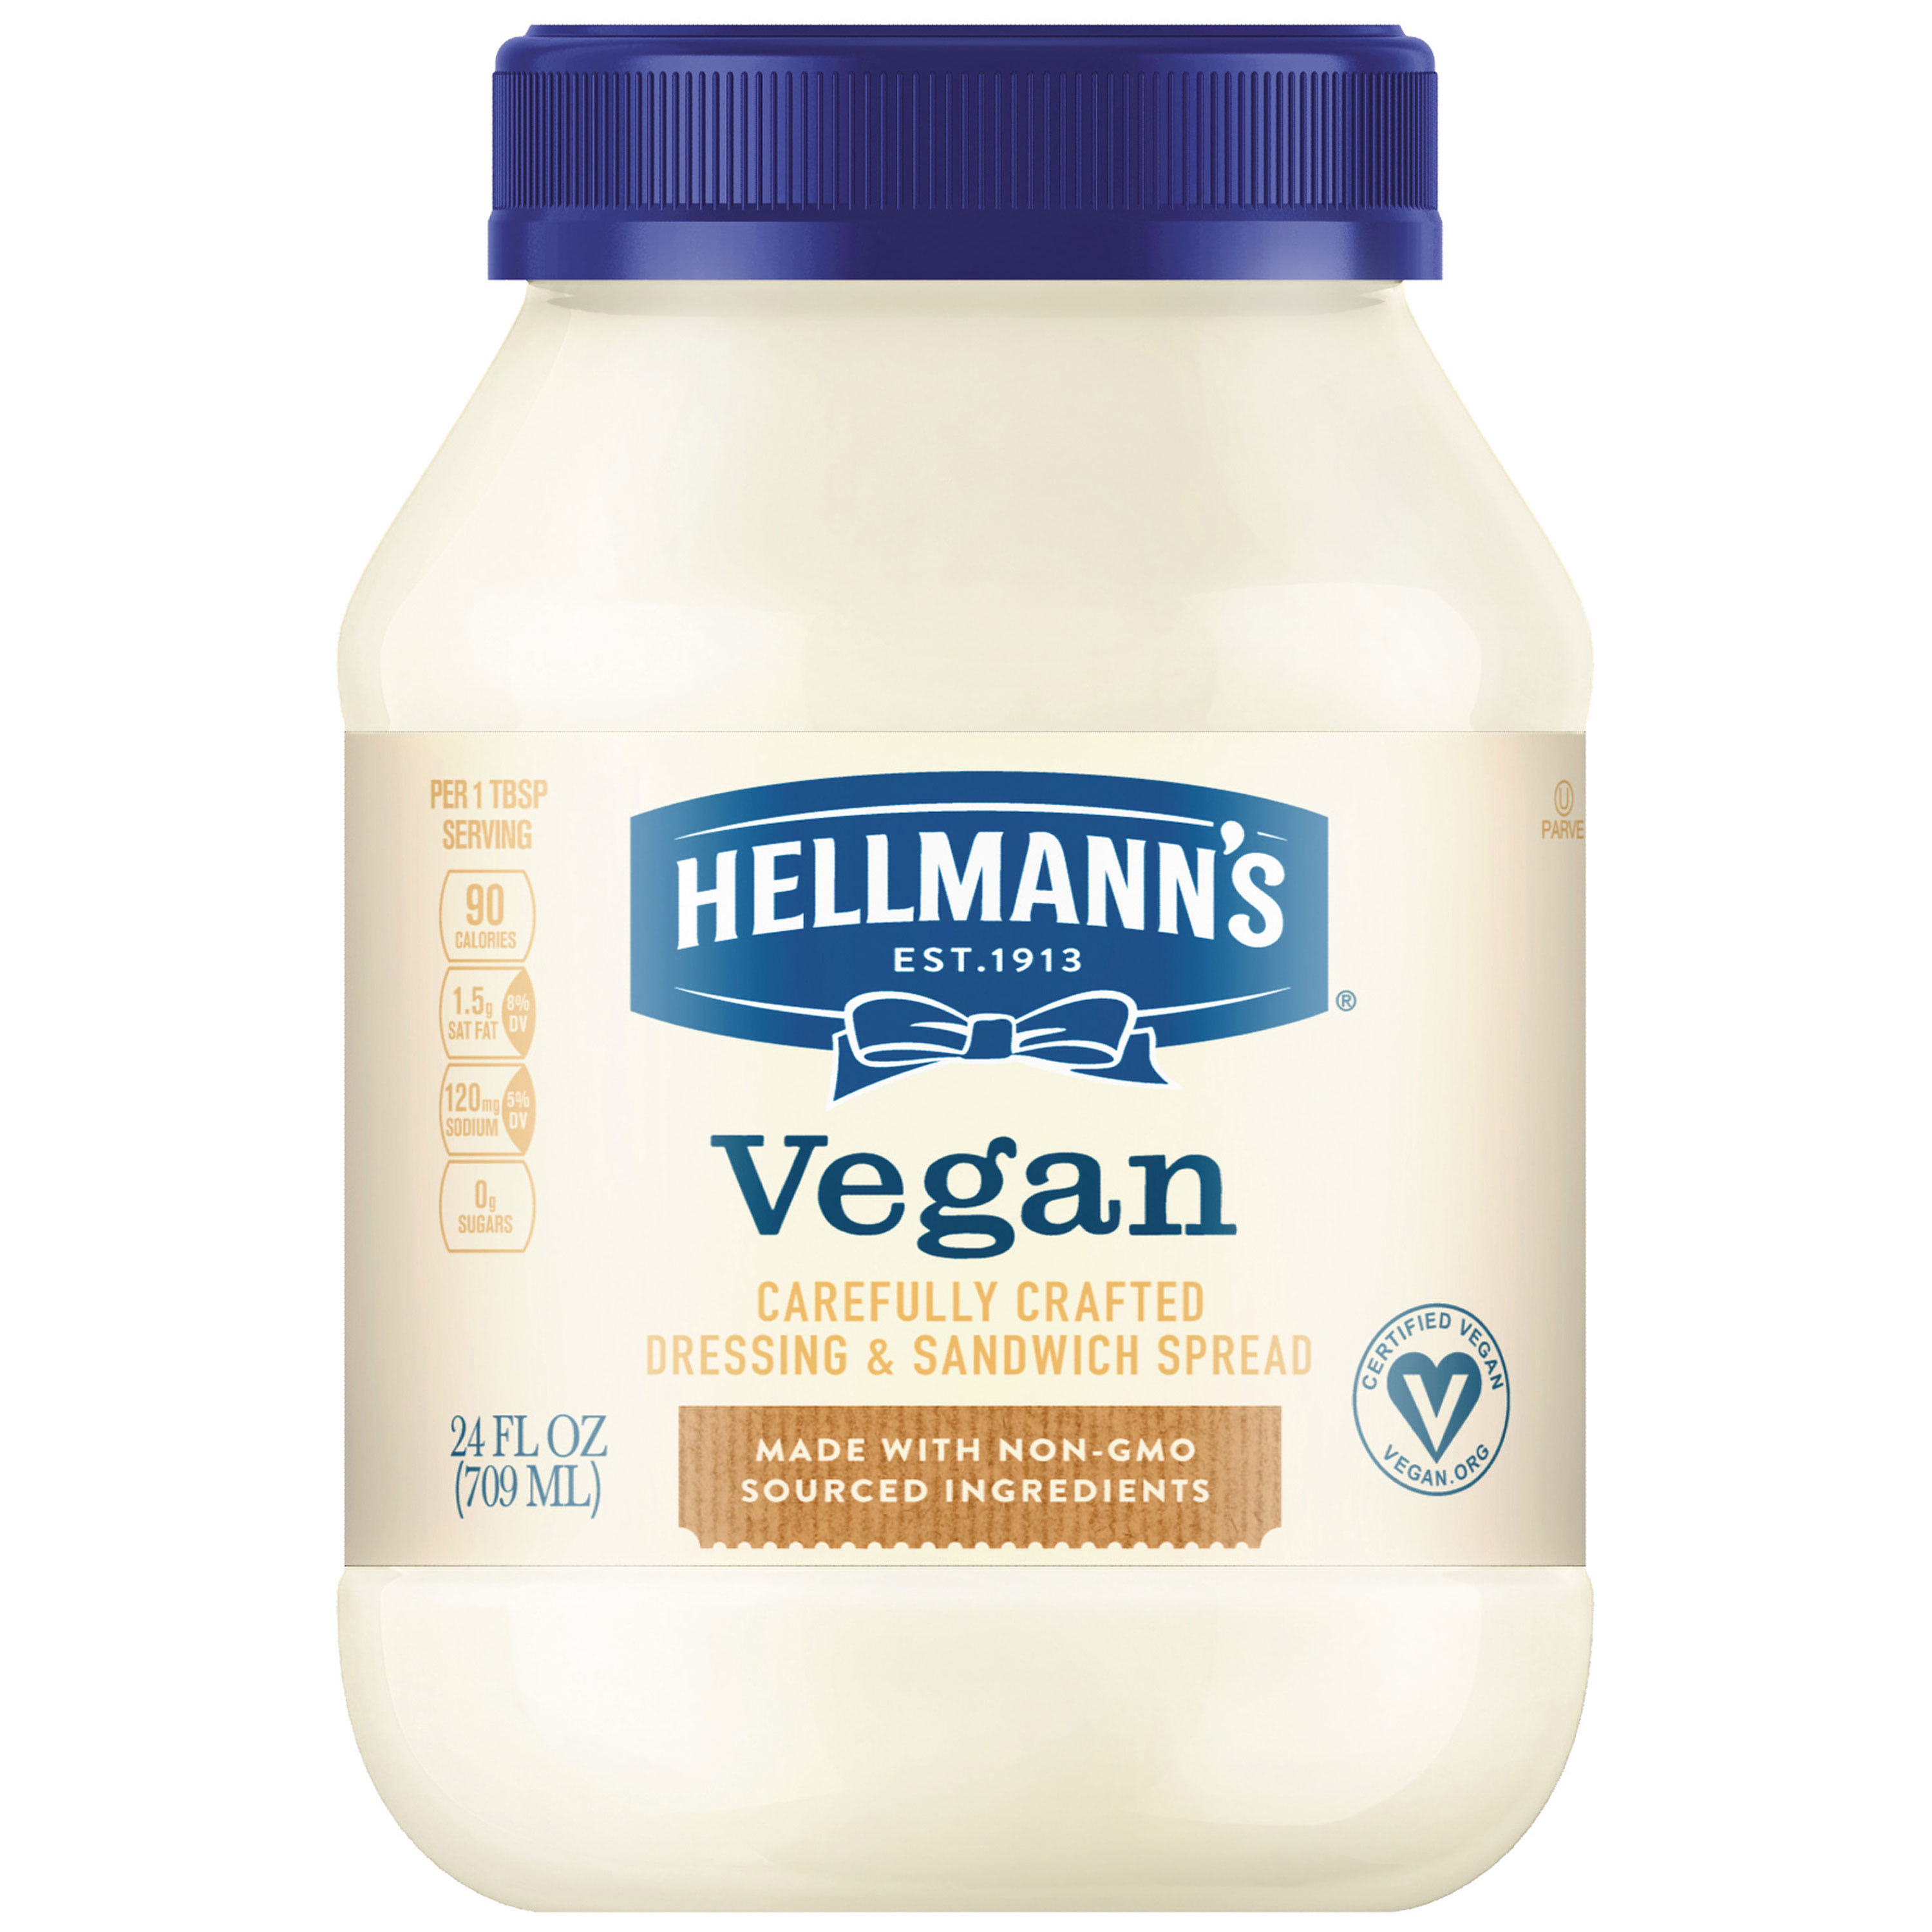 Hellmann's Vegan Dressing and Sandwich Spread, 24 oz